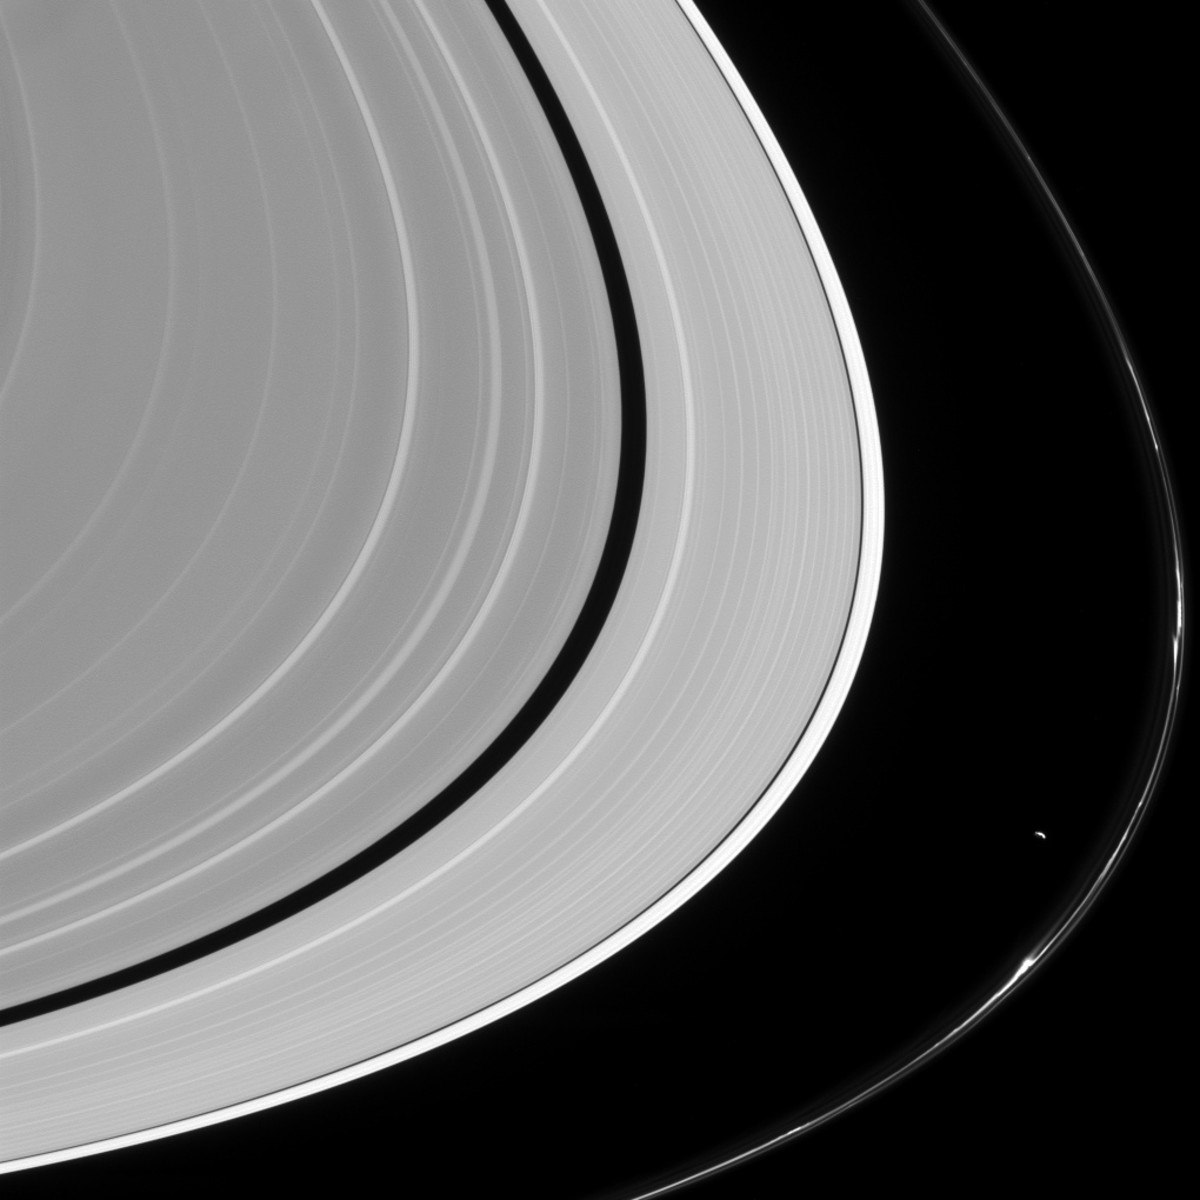 Prometheus pulling on the F ring.